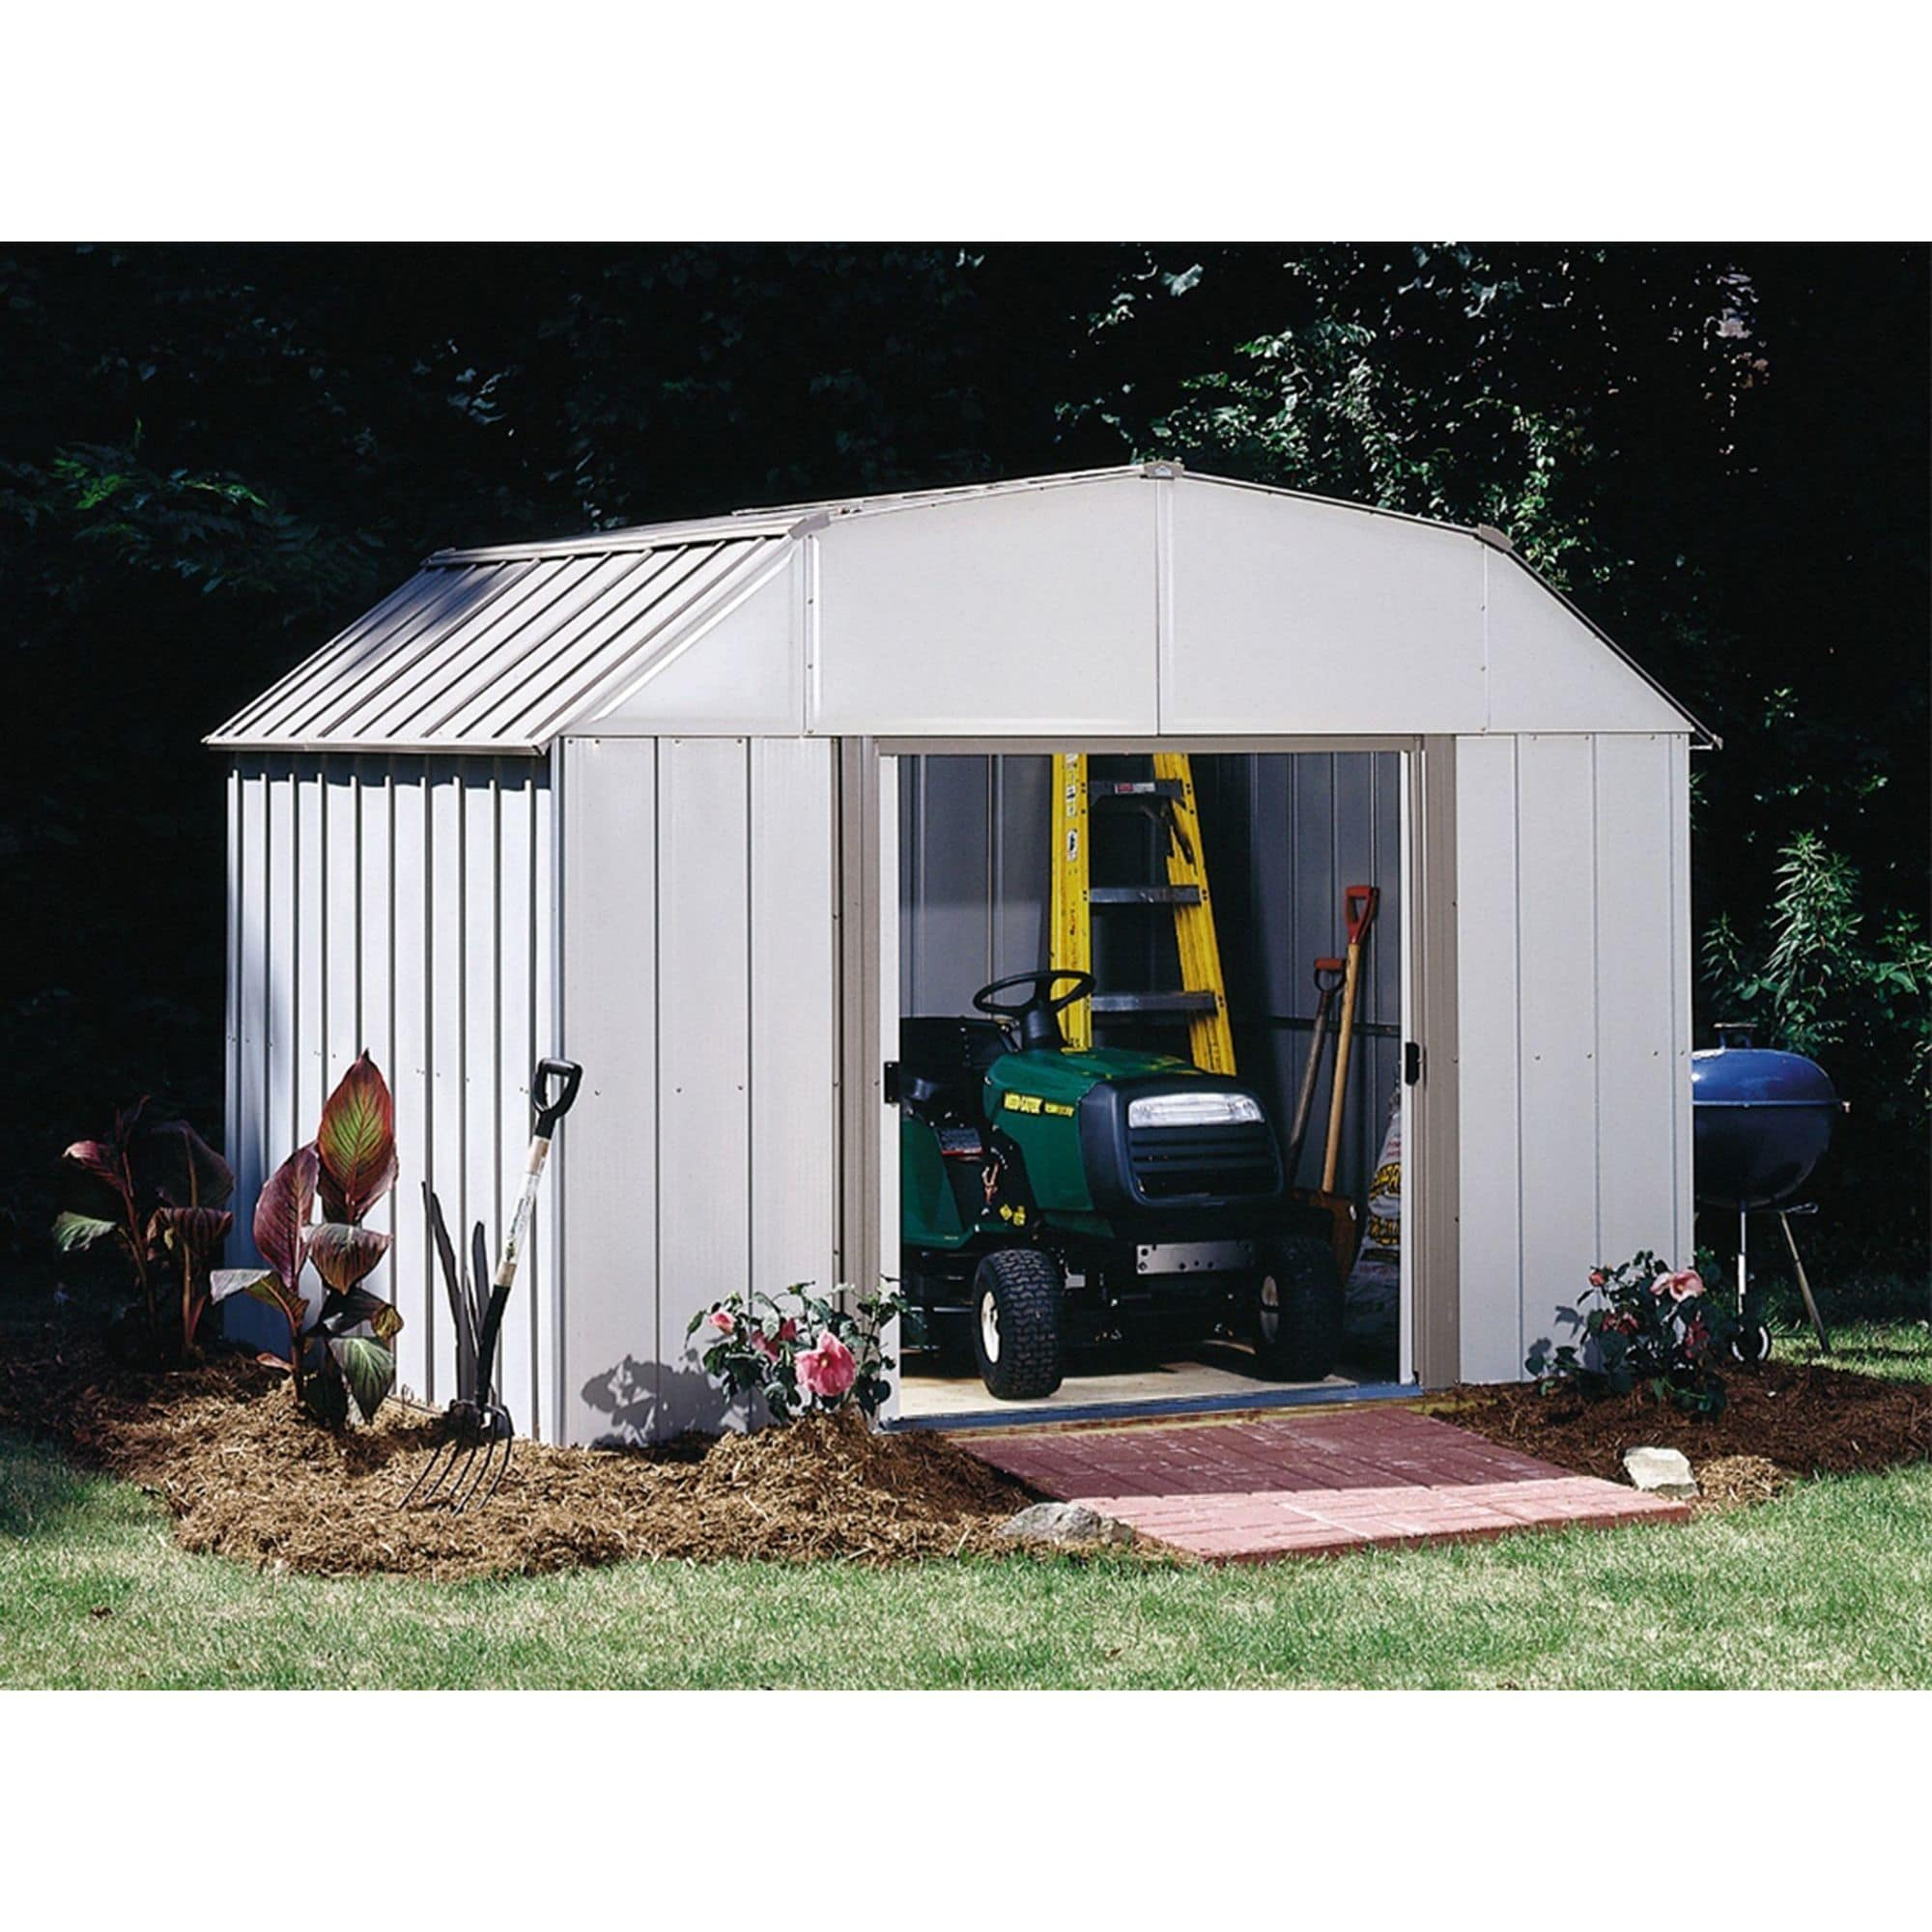 Steel Storage Sheds Lexington 10 X 8 Ft Steel Storage Shed Barn Style Taupe Eggshell